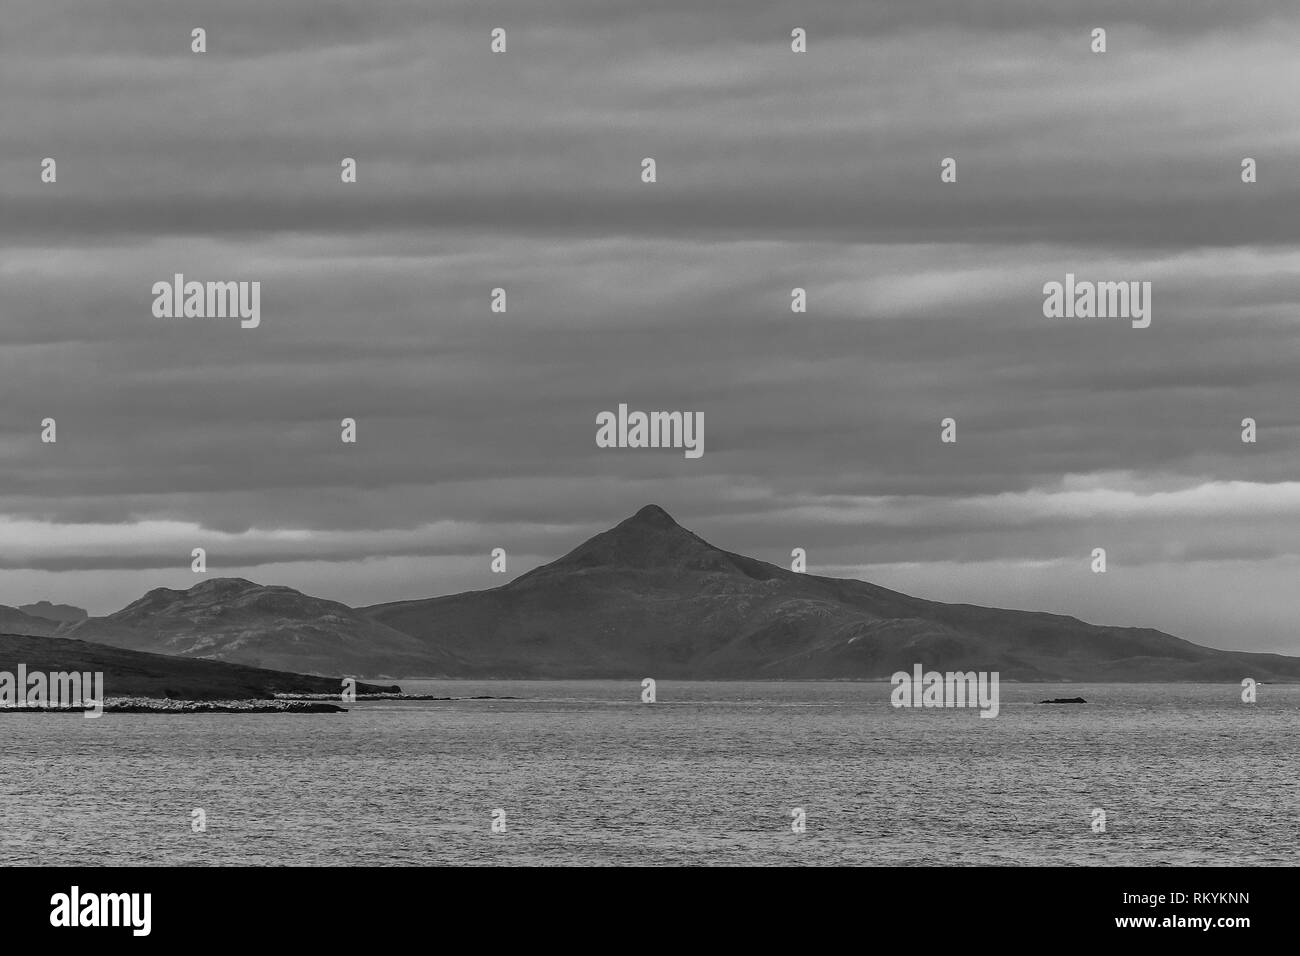 Scenic cruising around the remote legendary Cape Horn. This is where the Pacific and Atlantic oceans meet and notorious for its treacherous waters. - Stock Image